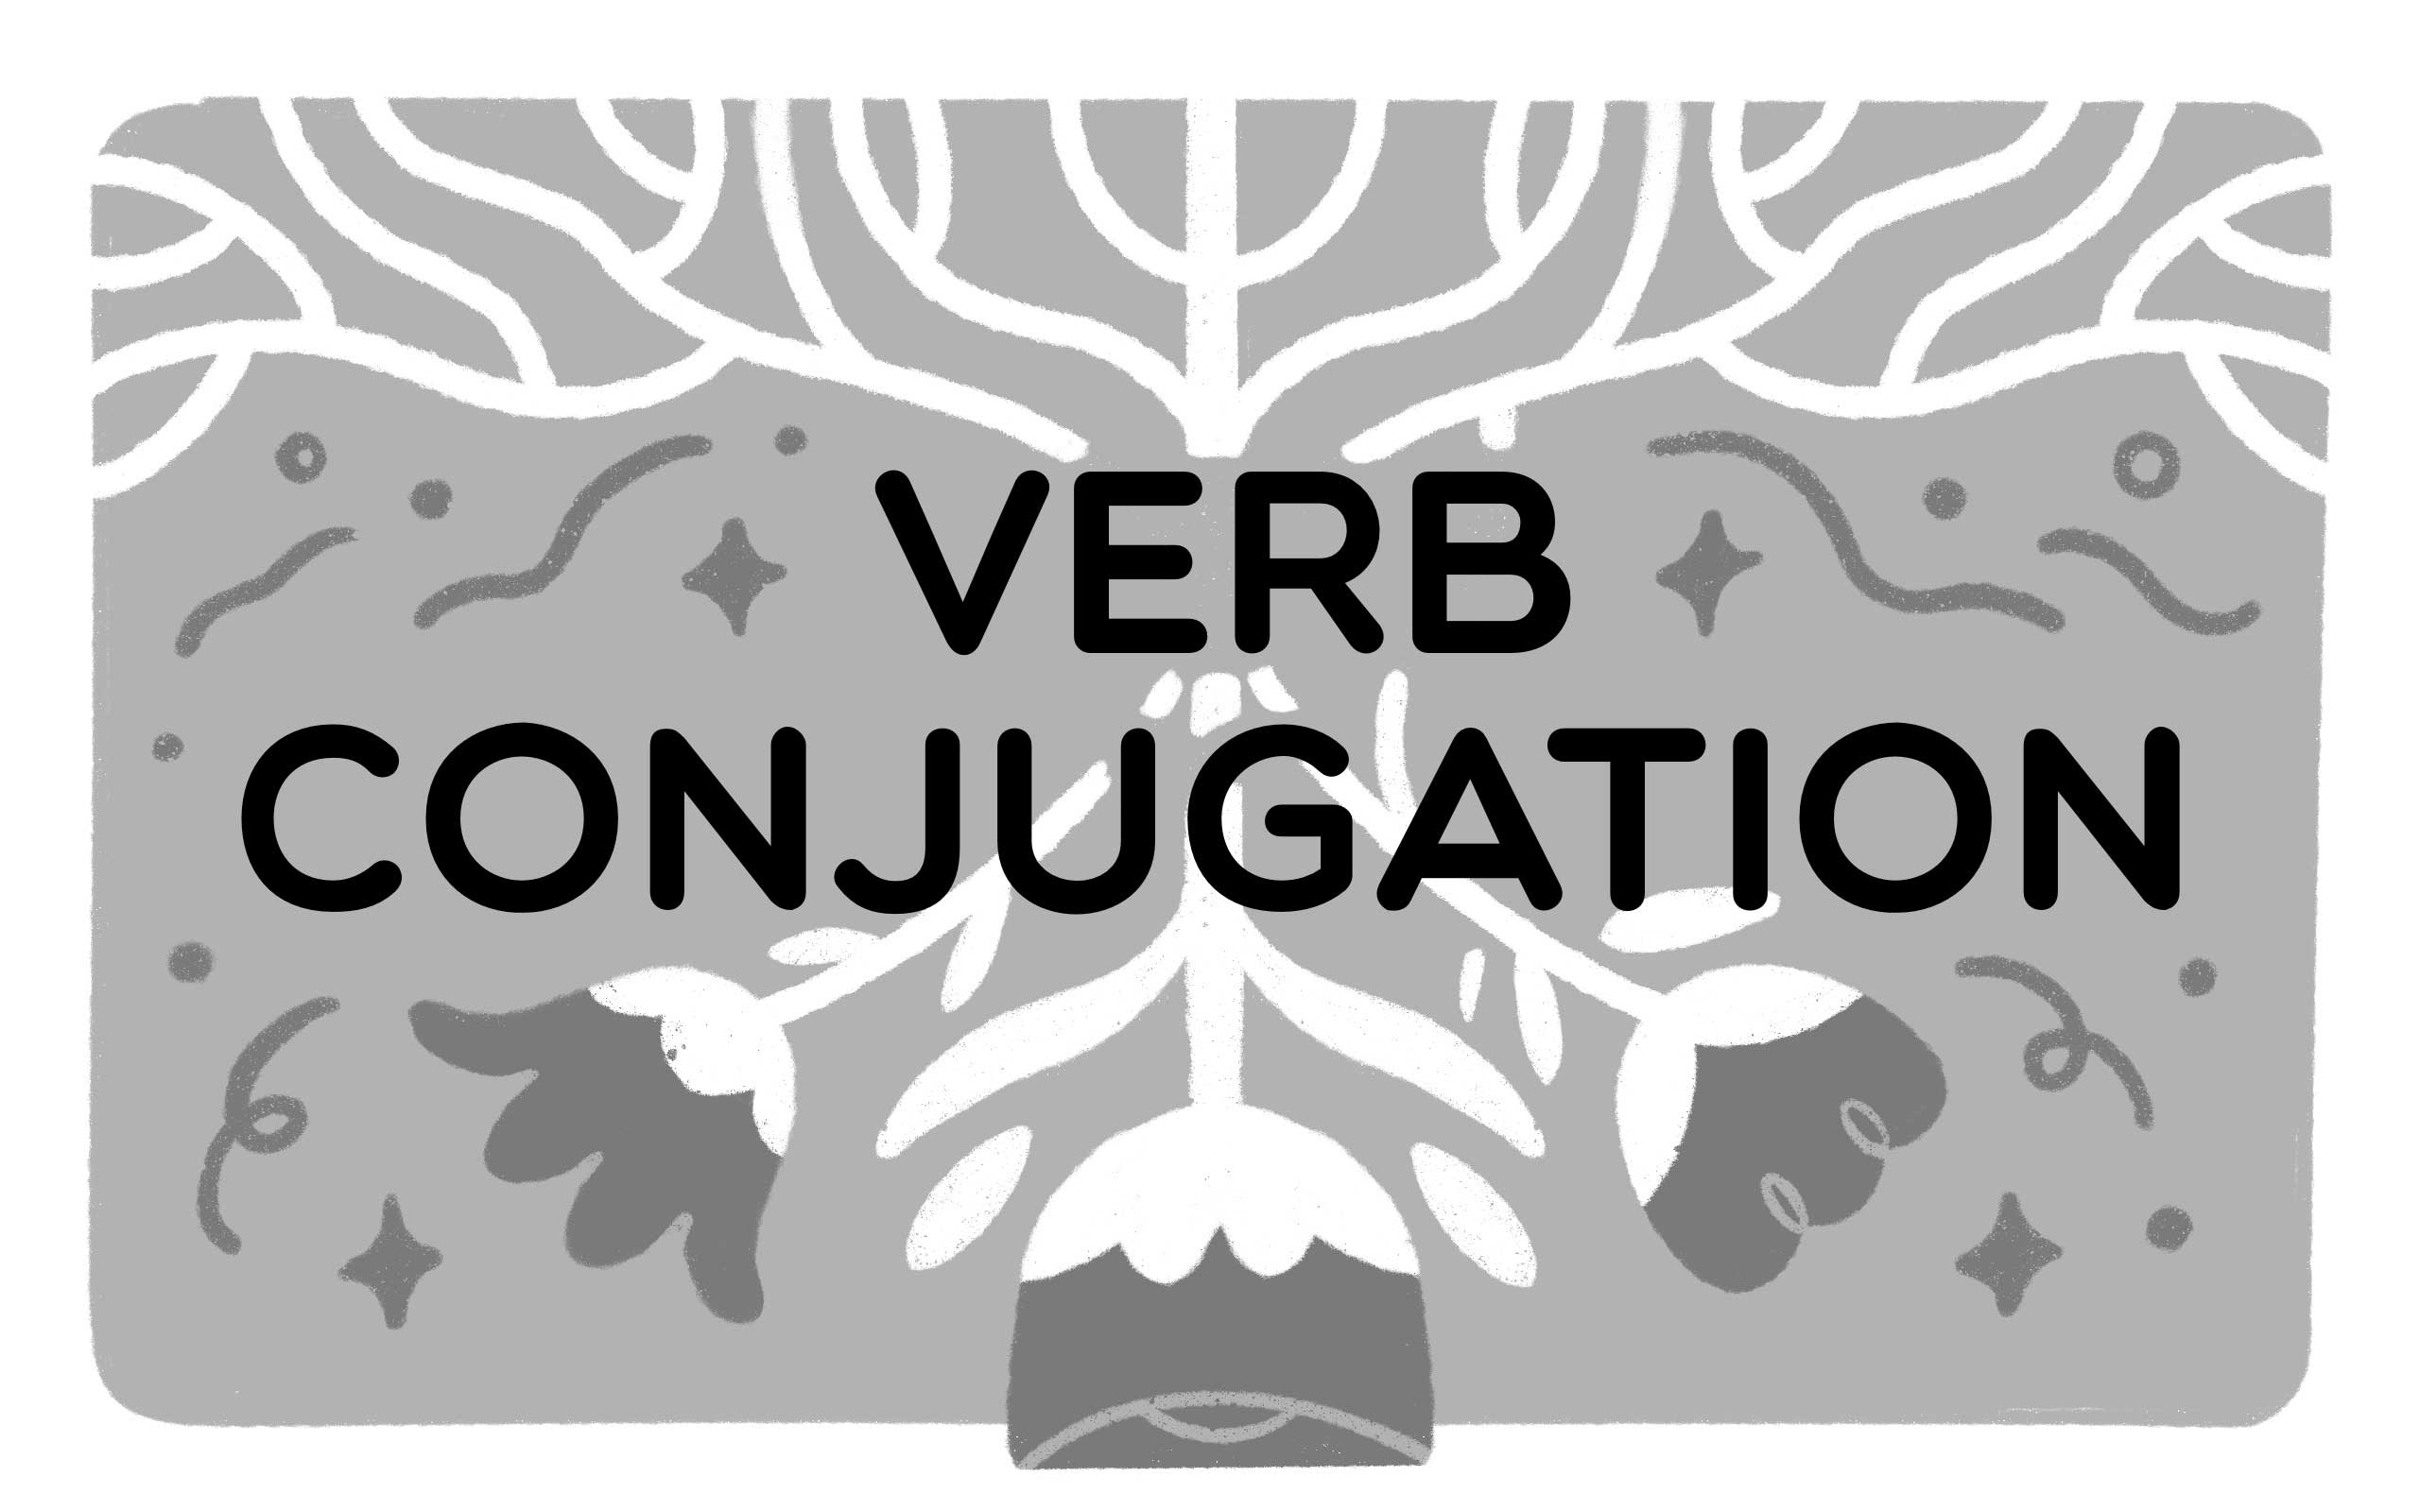 the words verb conjugation with upside down roots and flowers